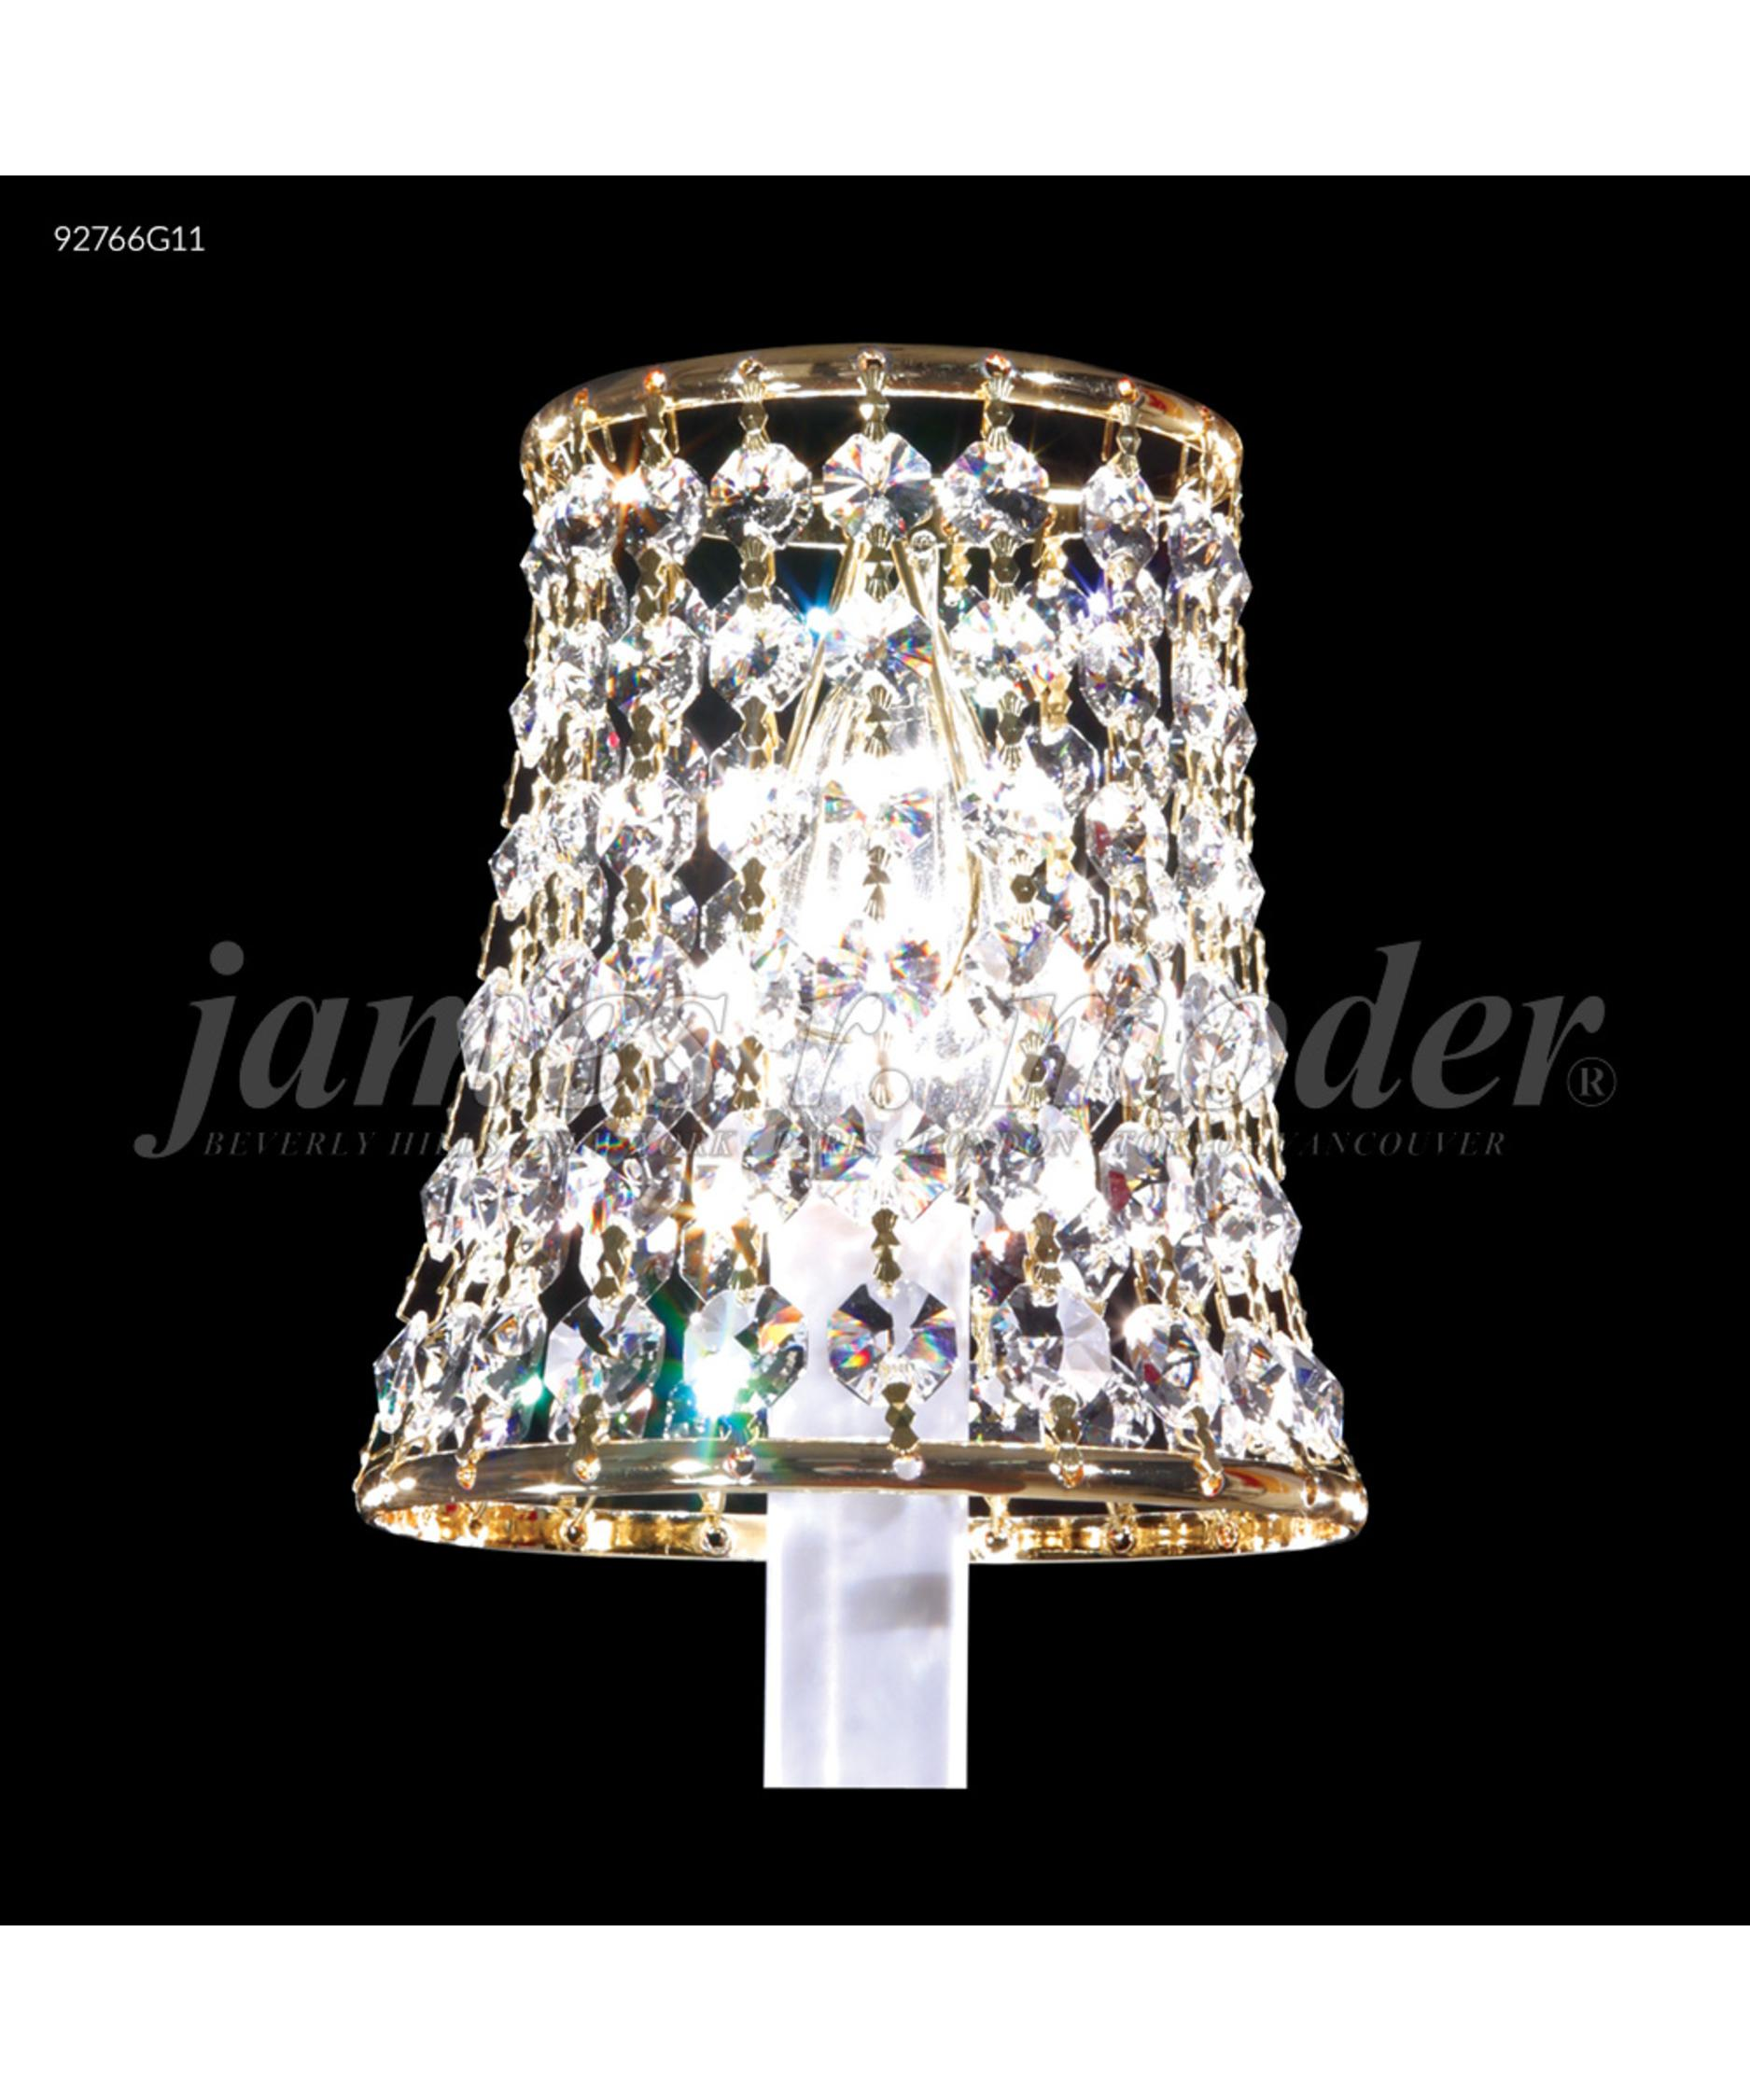 Crystal chandelier lamp shades thejots crystal lamp shades for chandeliers lamps shades lighting ideas arubaitofo Choice Image